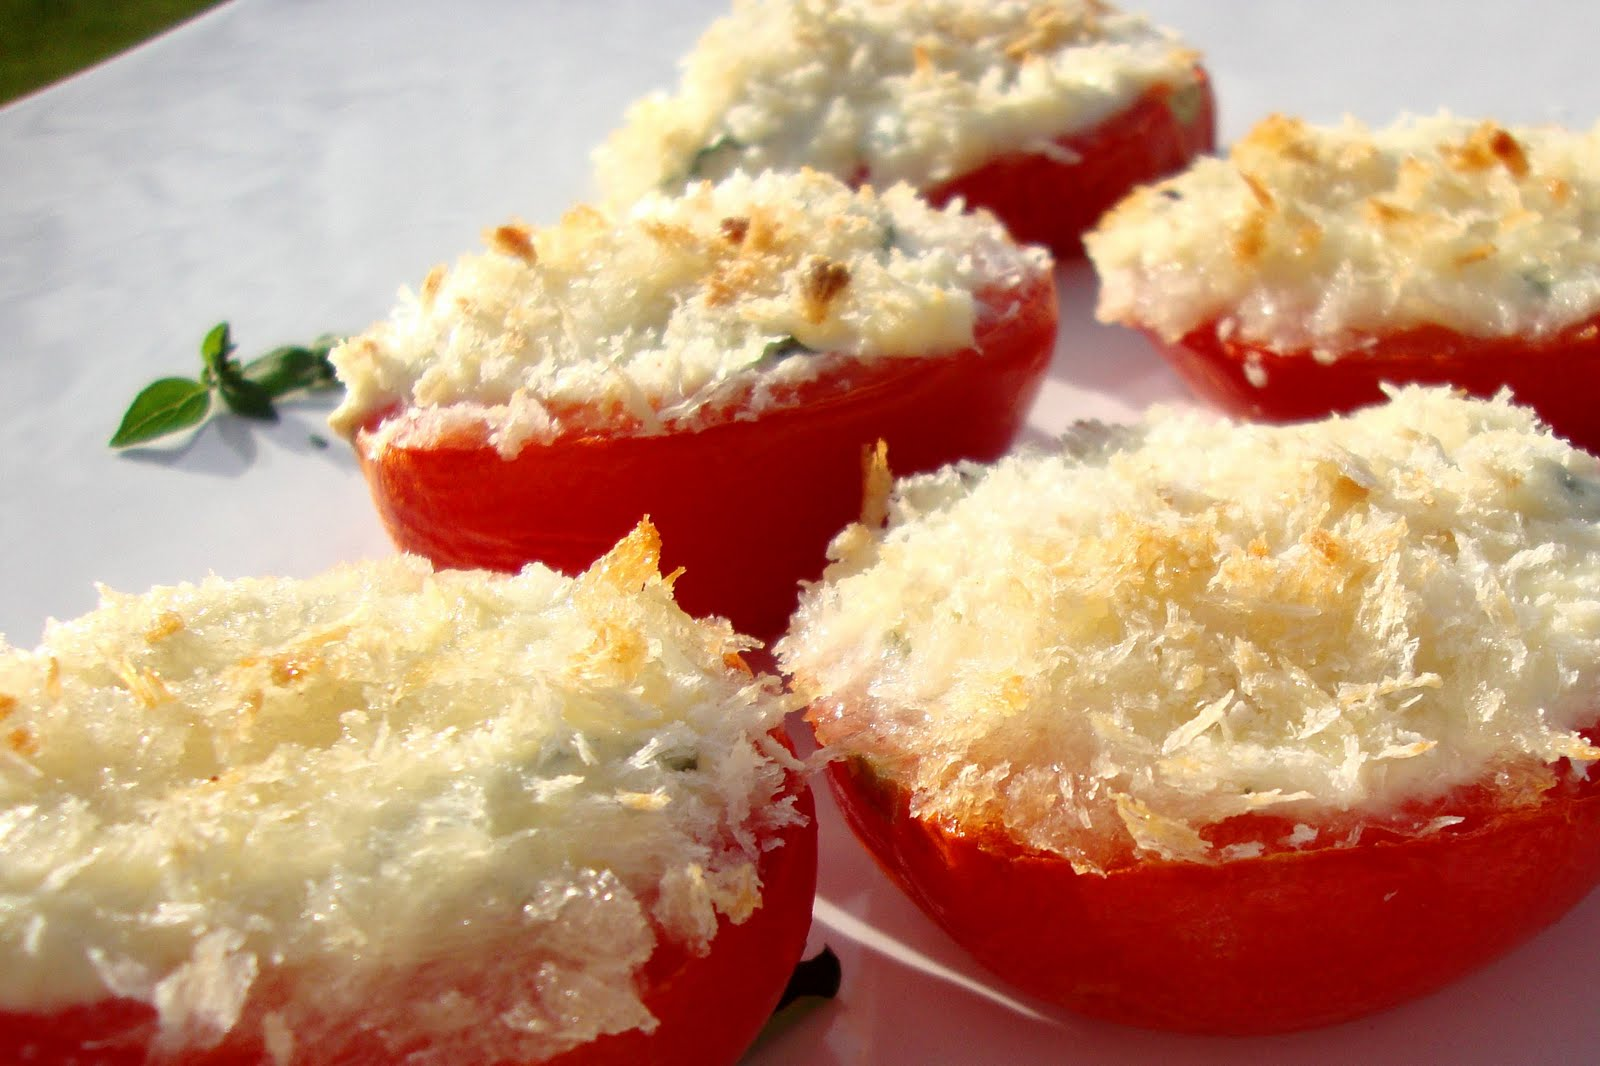 Recipe for Delicious: Ricotta-stuffed Tomatoes